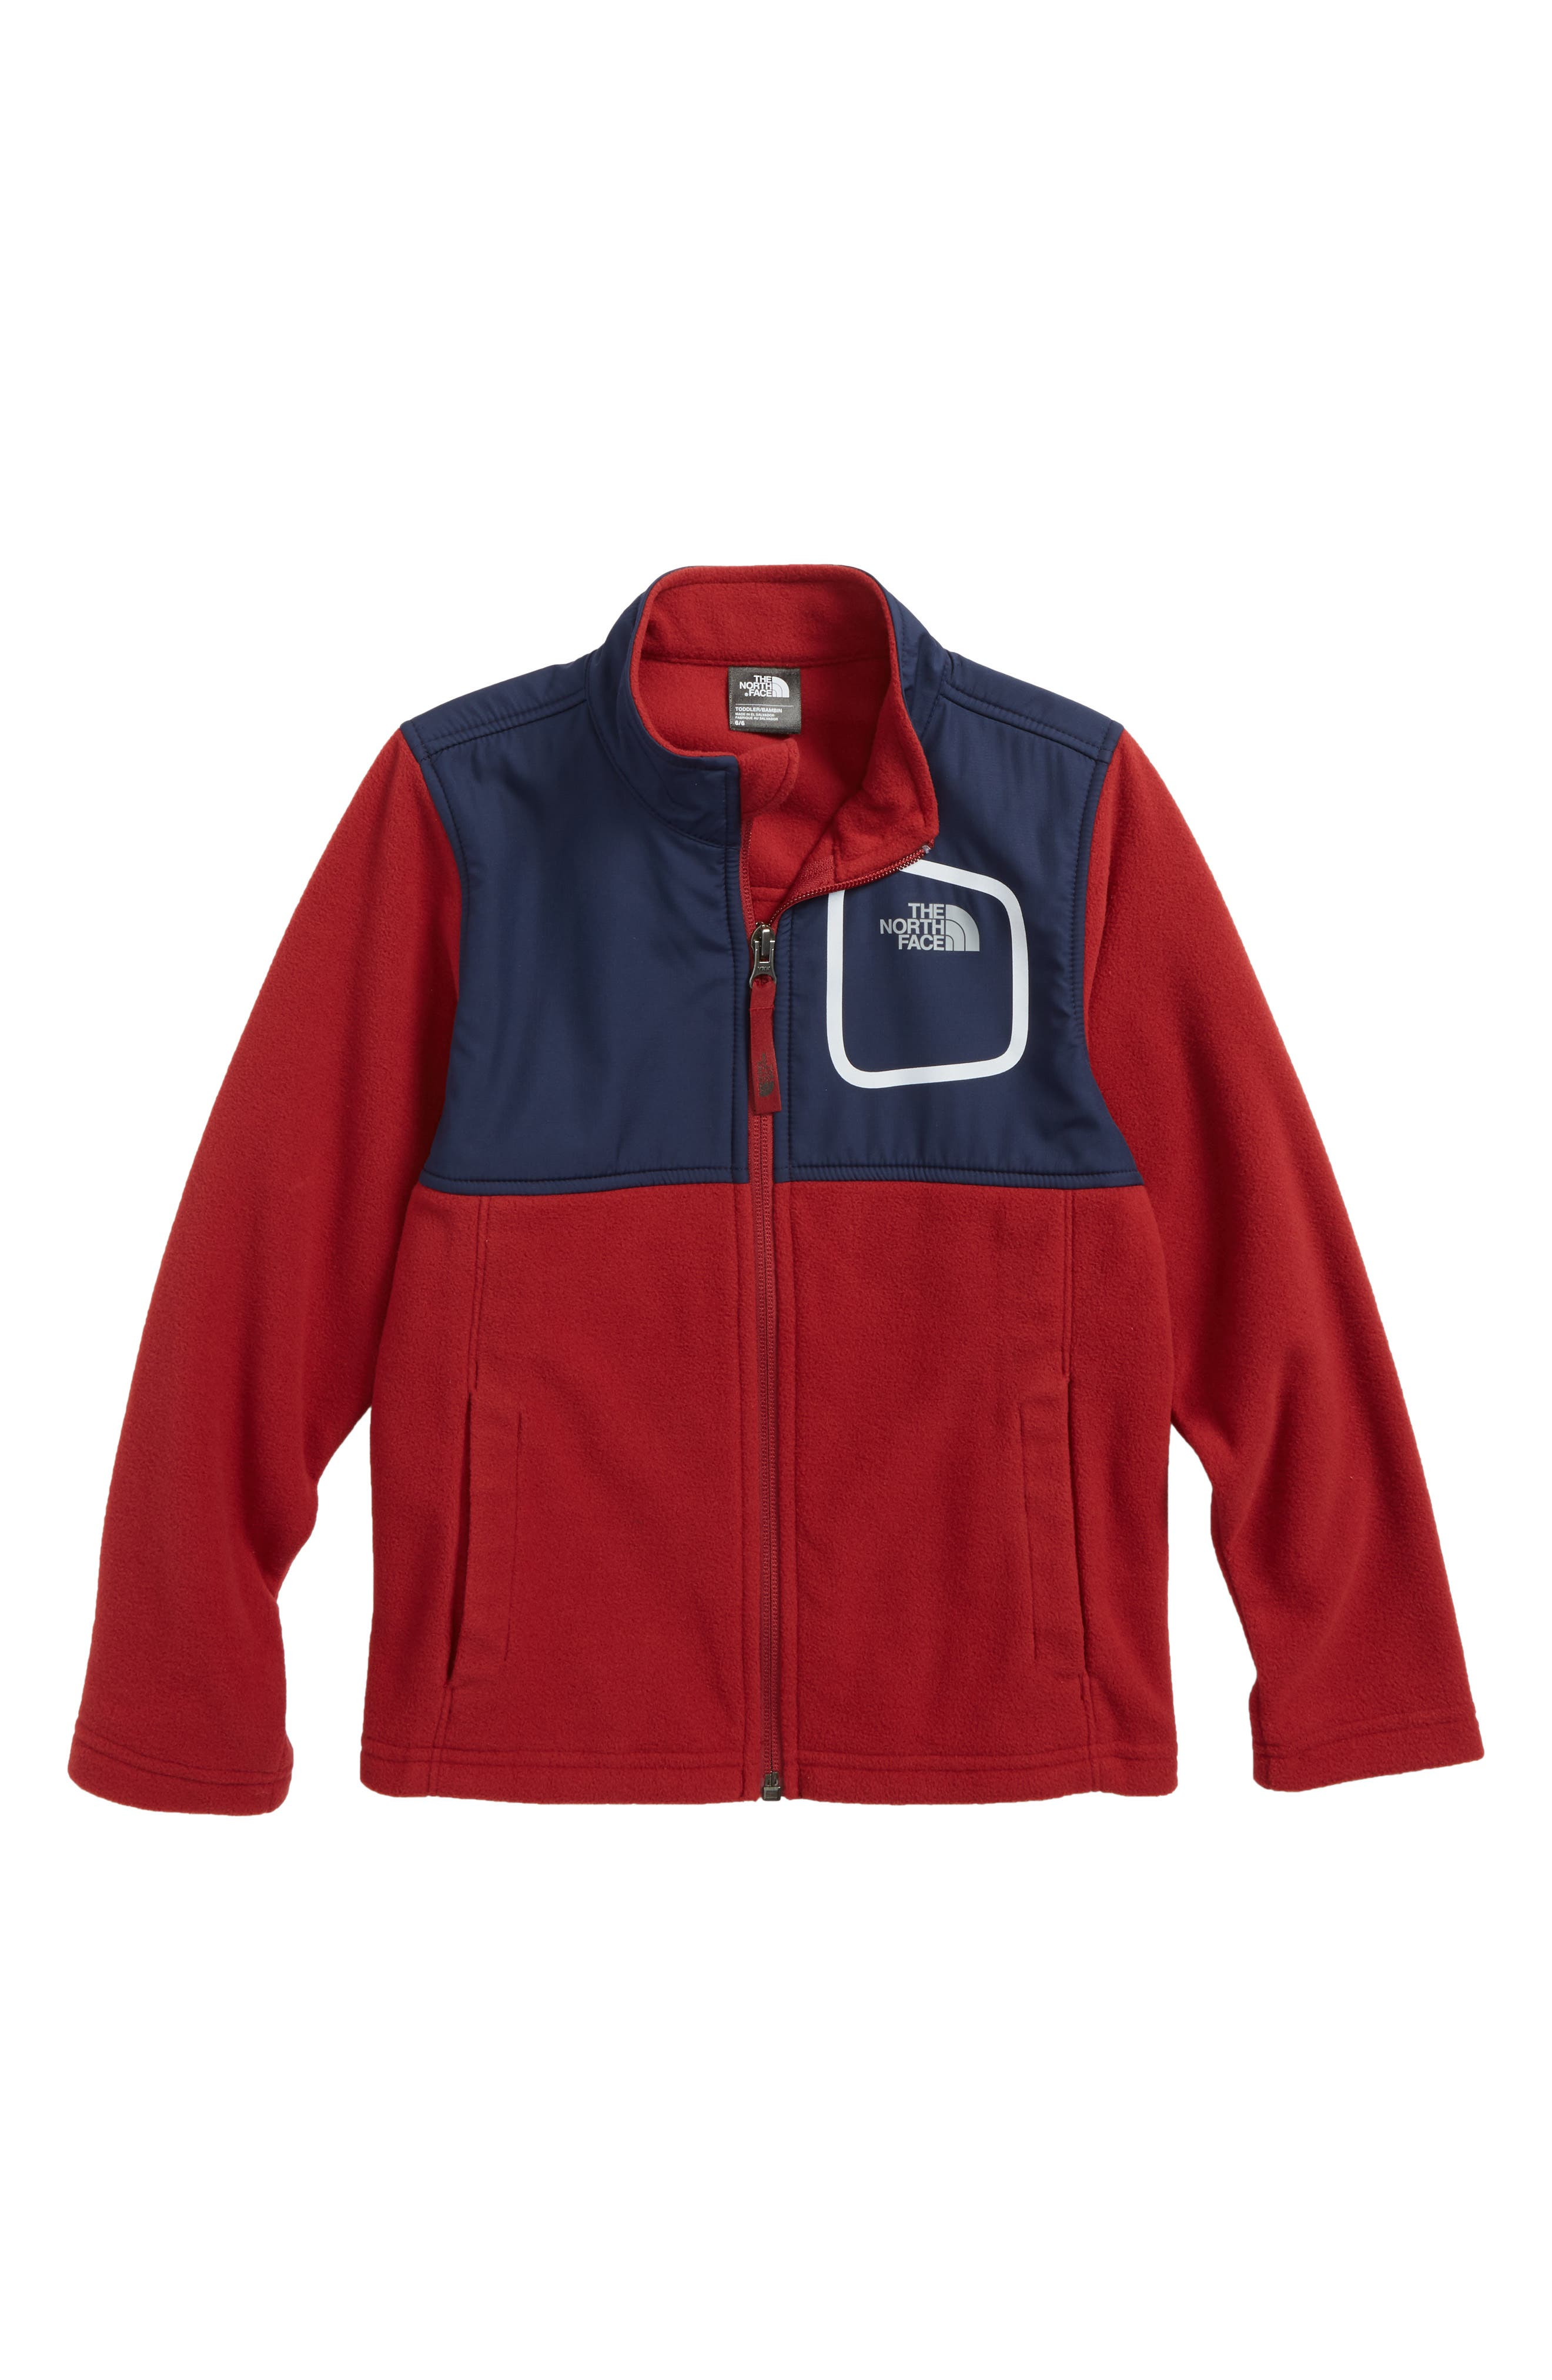 Peril Glacier Microfleece Track Jacket,                         Main,                         color, Biking Red/ Cosmic Blue